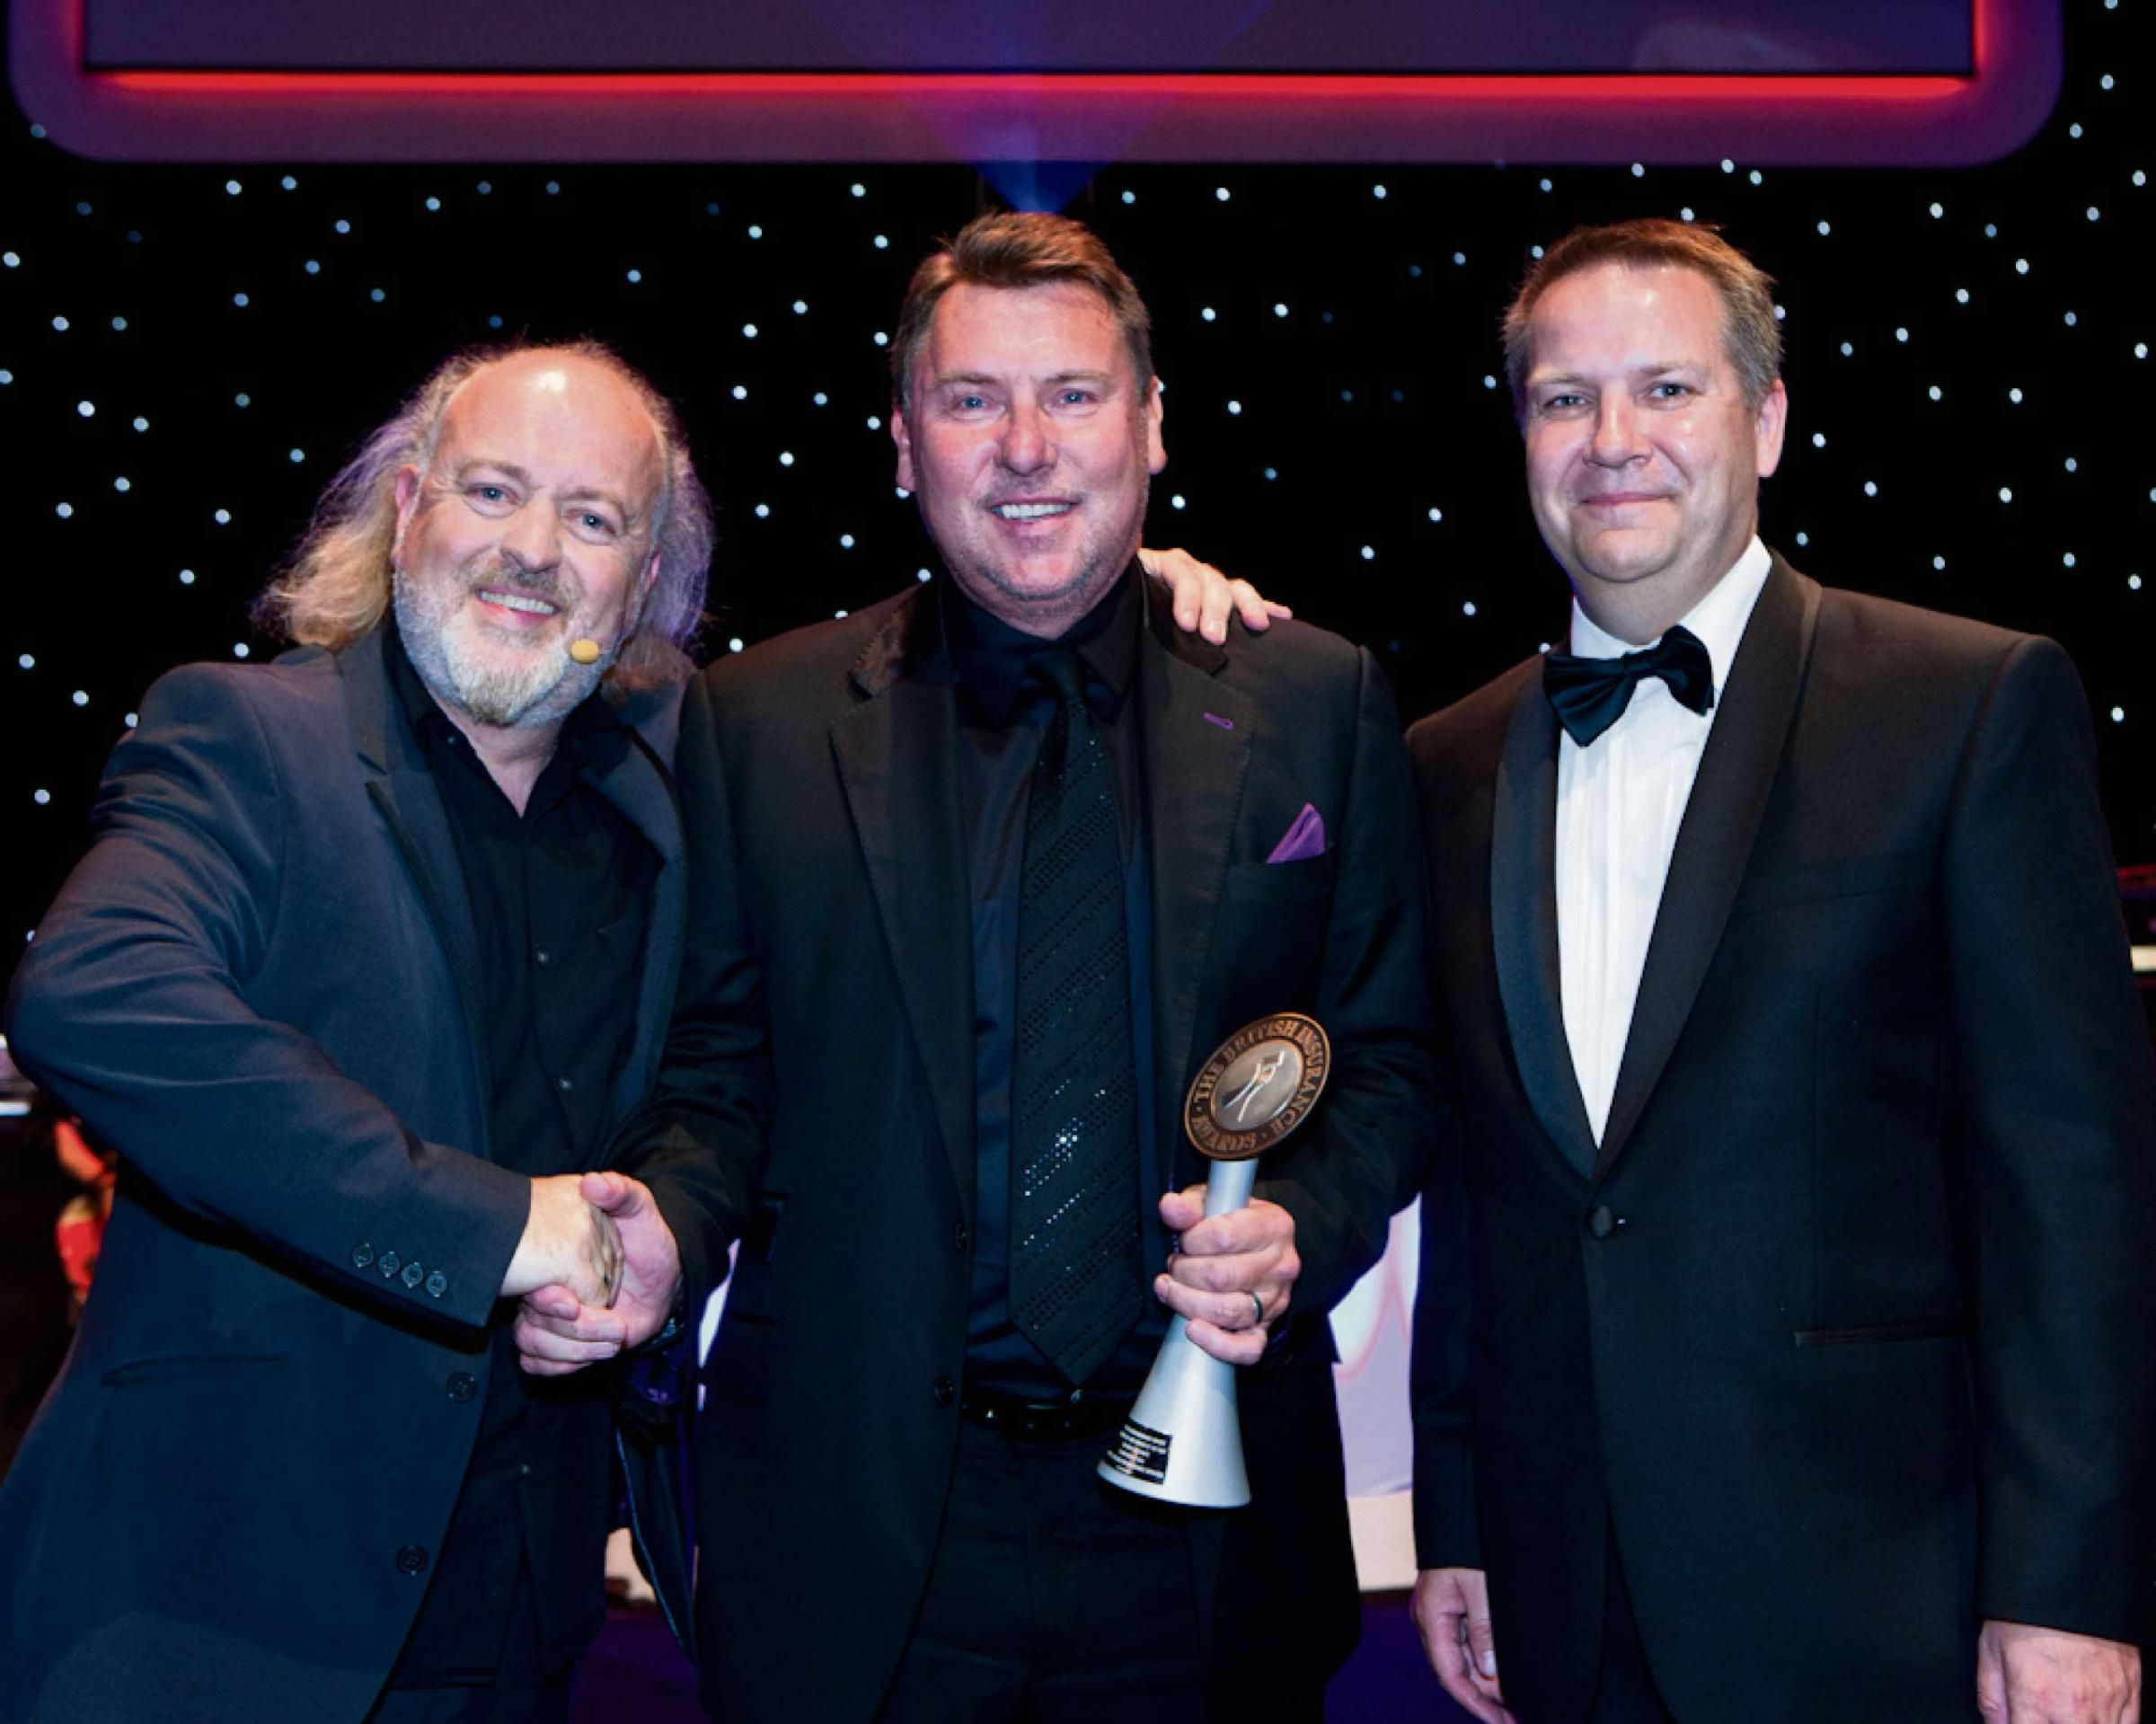 Paul Moors, centre, with the commercial lines broker of the year trophy flanked by Paul Hirst, right, a director at award sponsor RSA, and comedian Bill Bailey, left, who hosted the awards ceremony. Picture credit: Rob Kennard